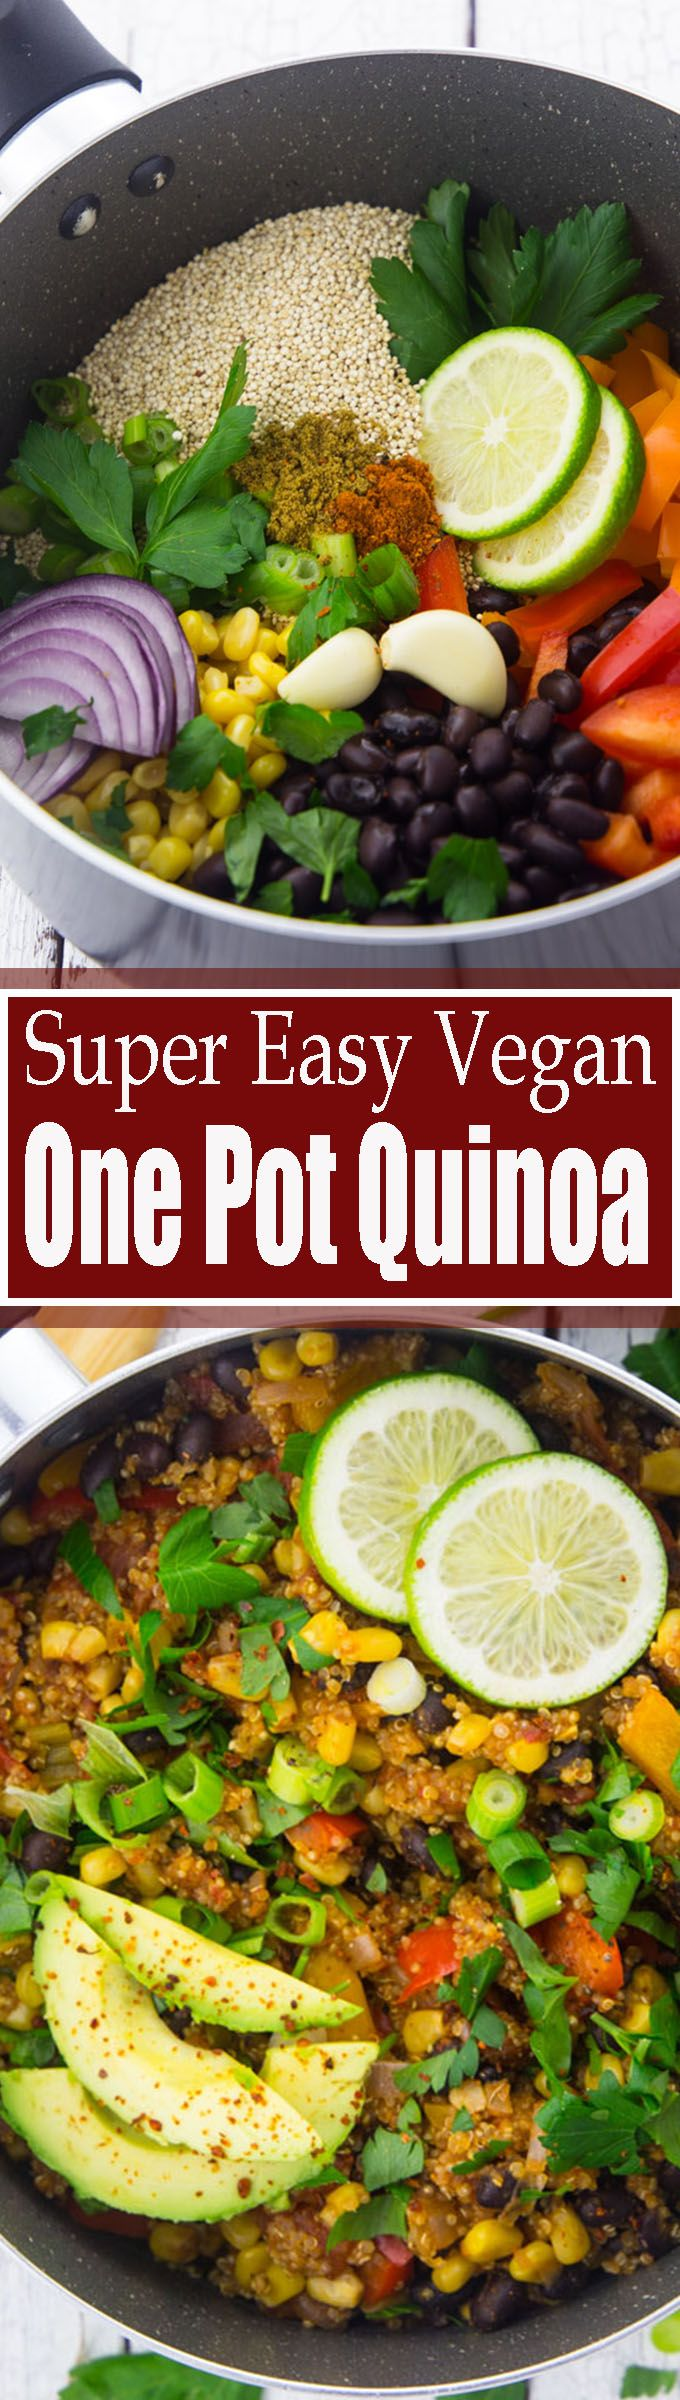 This one pot quinoa makes such a great and healthy dinner! It's vegan, vegetarian, gluten-free, and super easy to make! <3